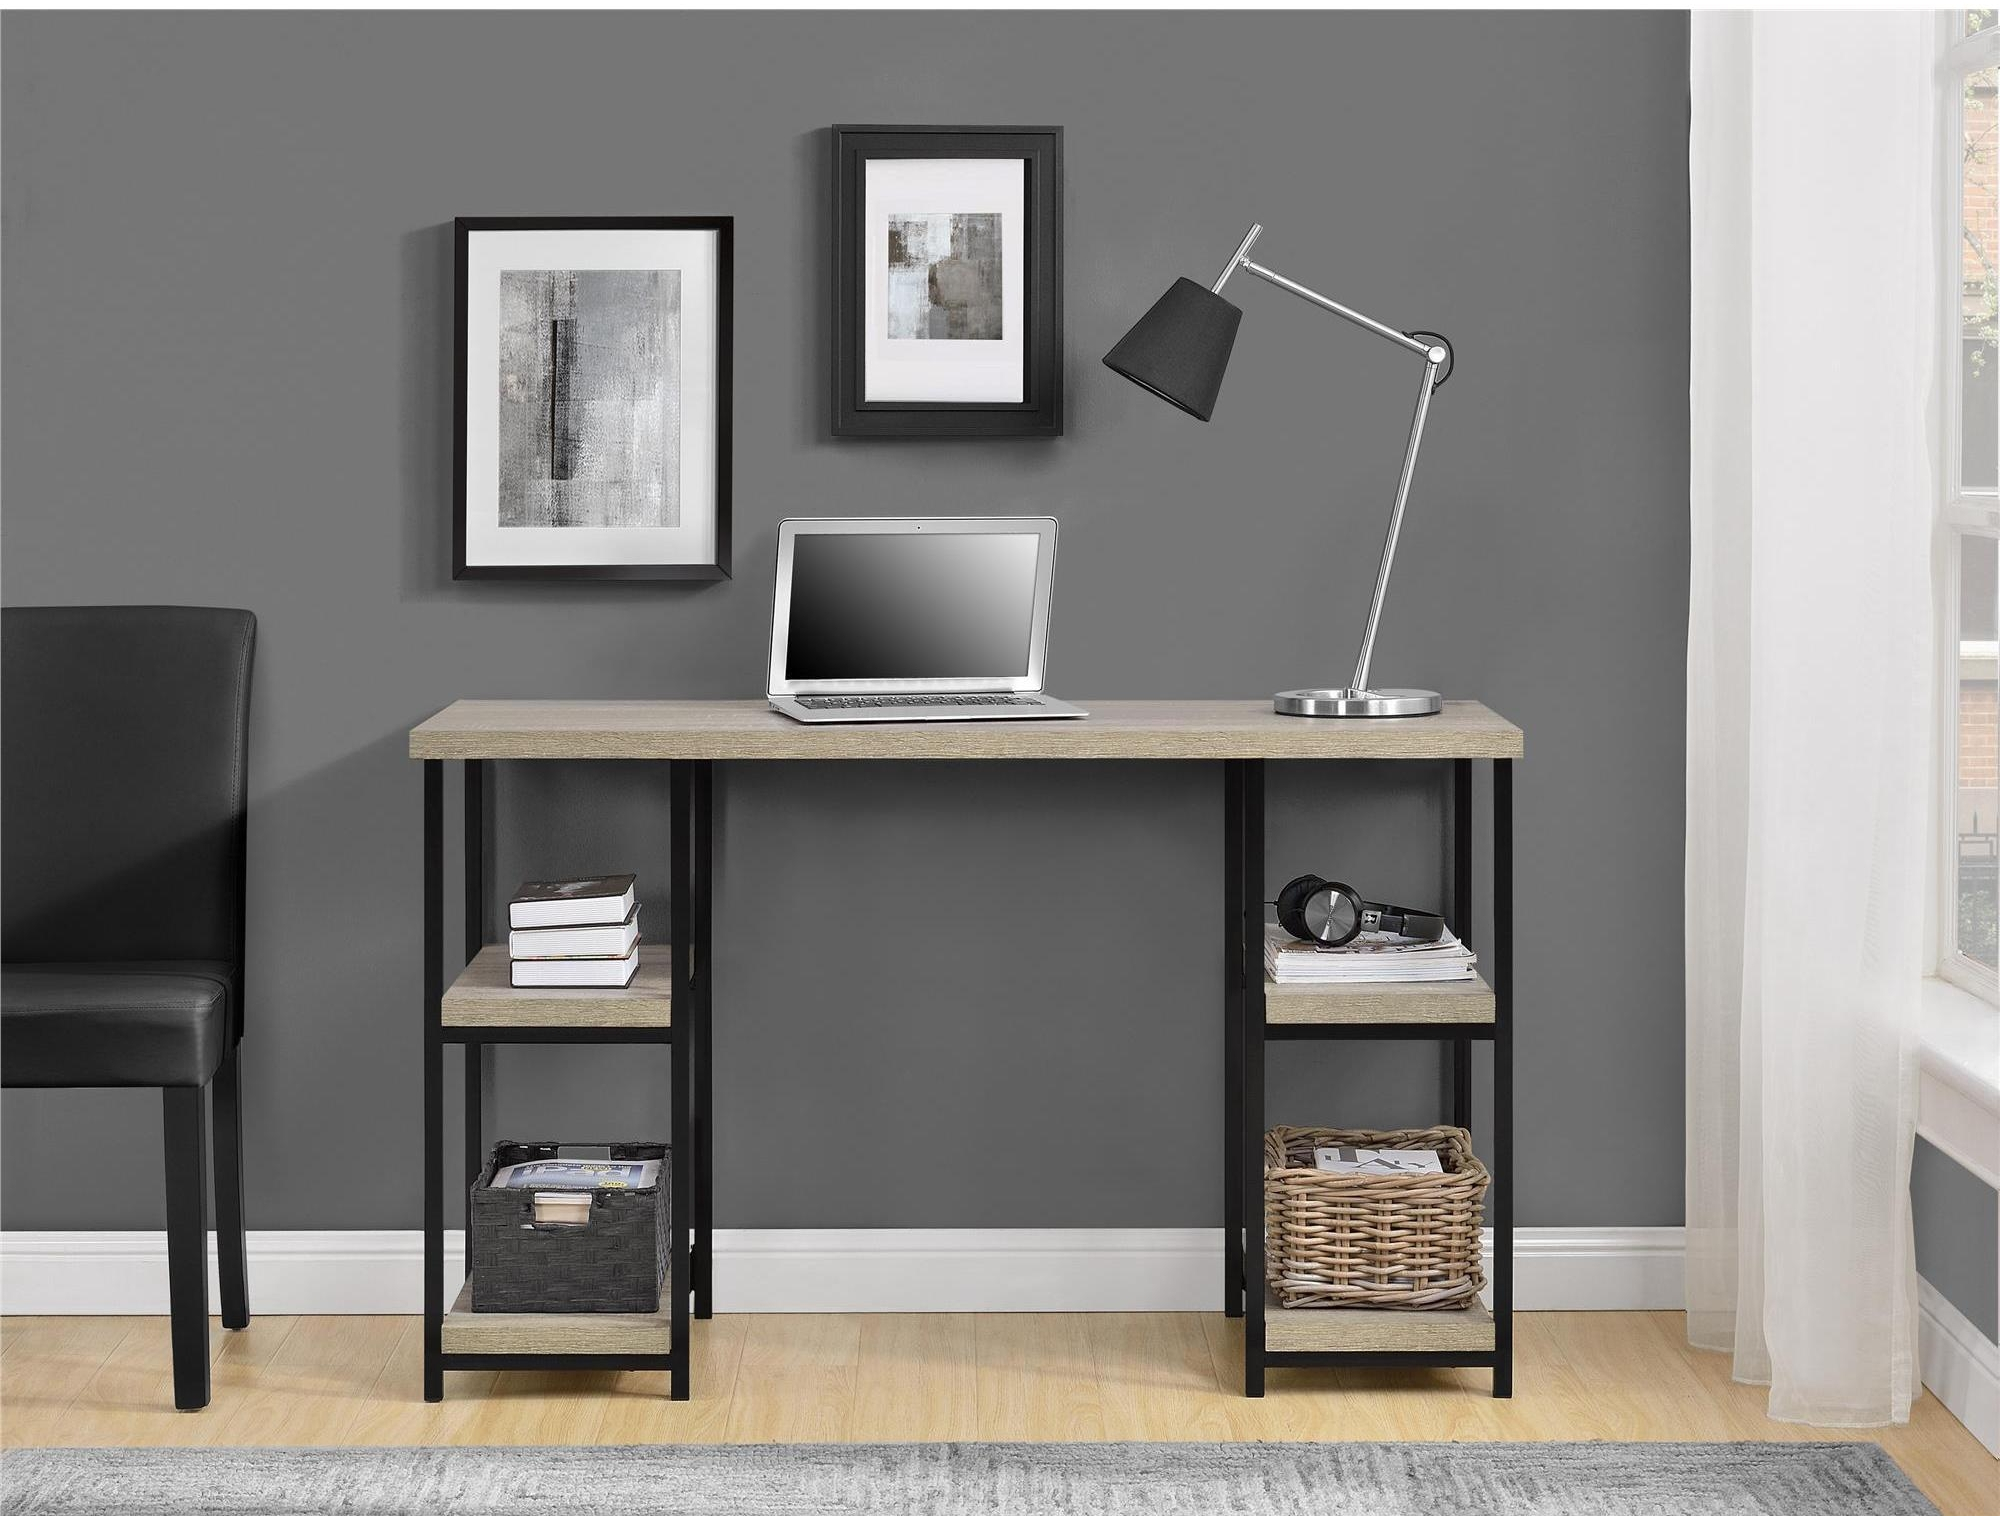 20+ Contemporary Office Desk Designs, Decorating Ideas. Walmart Desk Lamps. Modern Table Clock. Side Table With Built In Lamp. Hilton Honors Diamond Desk. Resolute Desk Wiki. Twin Bed Frame Drawers. Modern Drop Leaf Table. Association Of Desk And Derrick Clubs